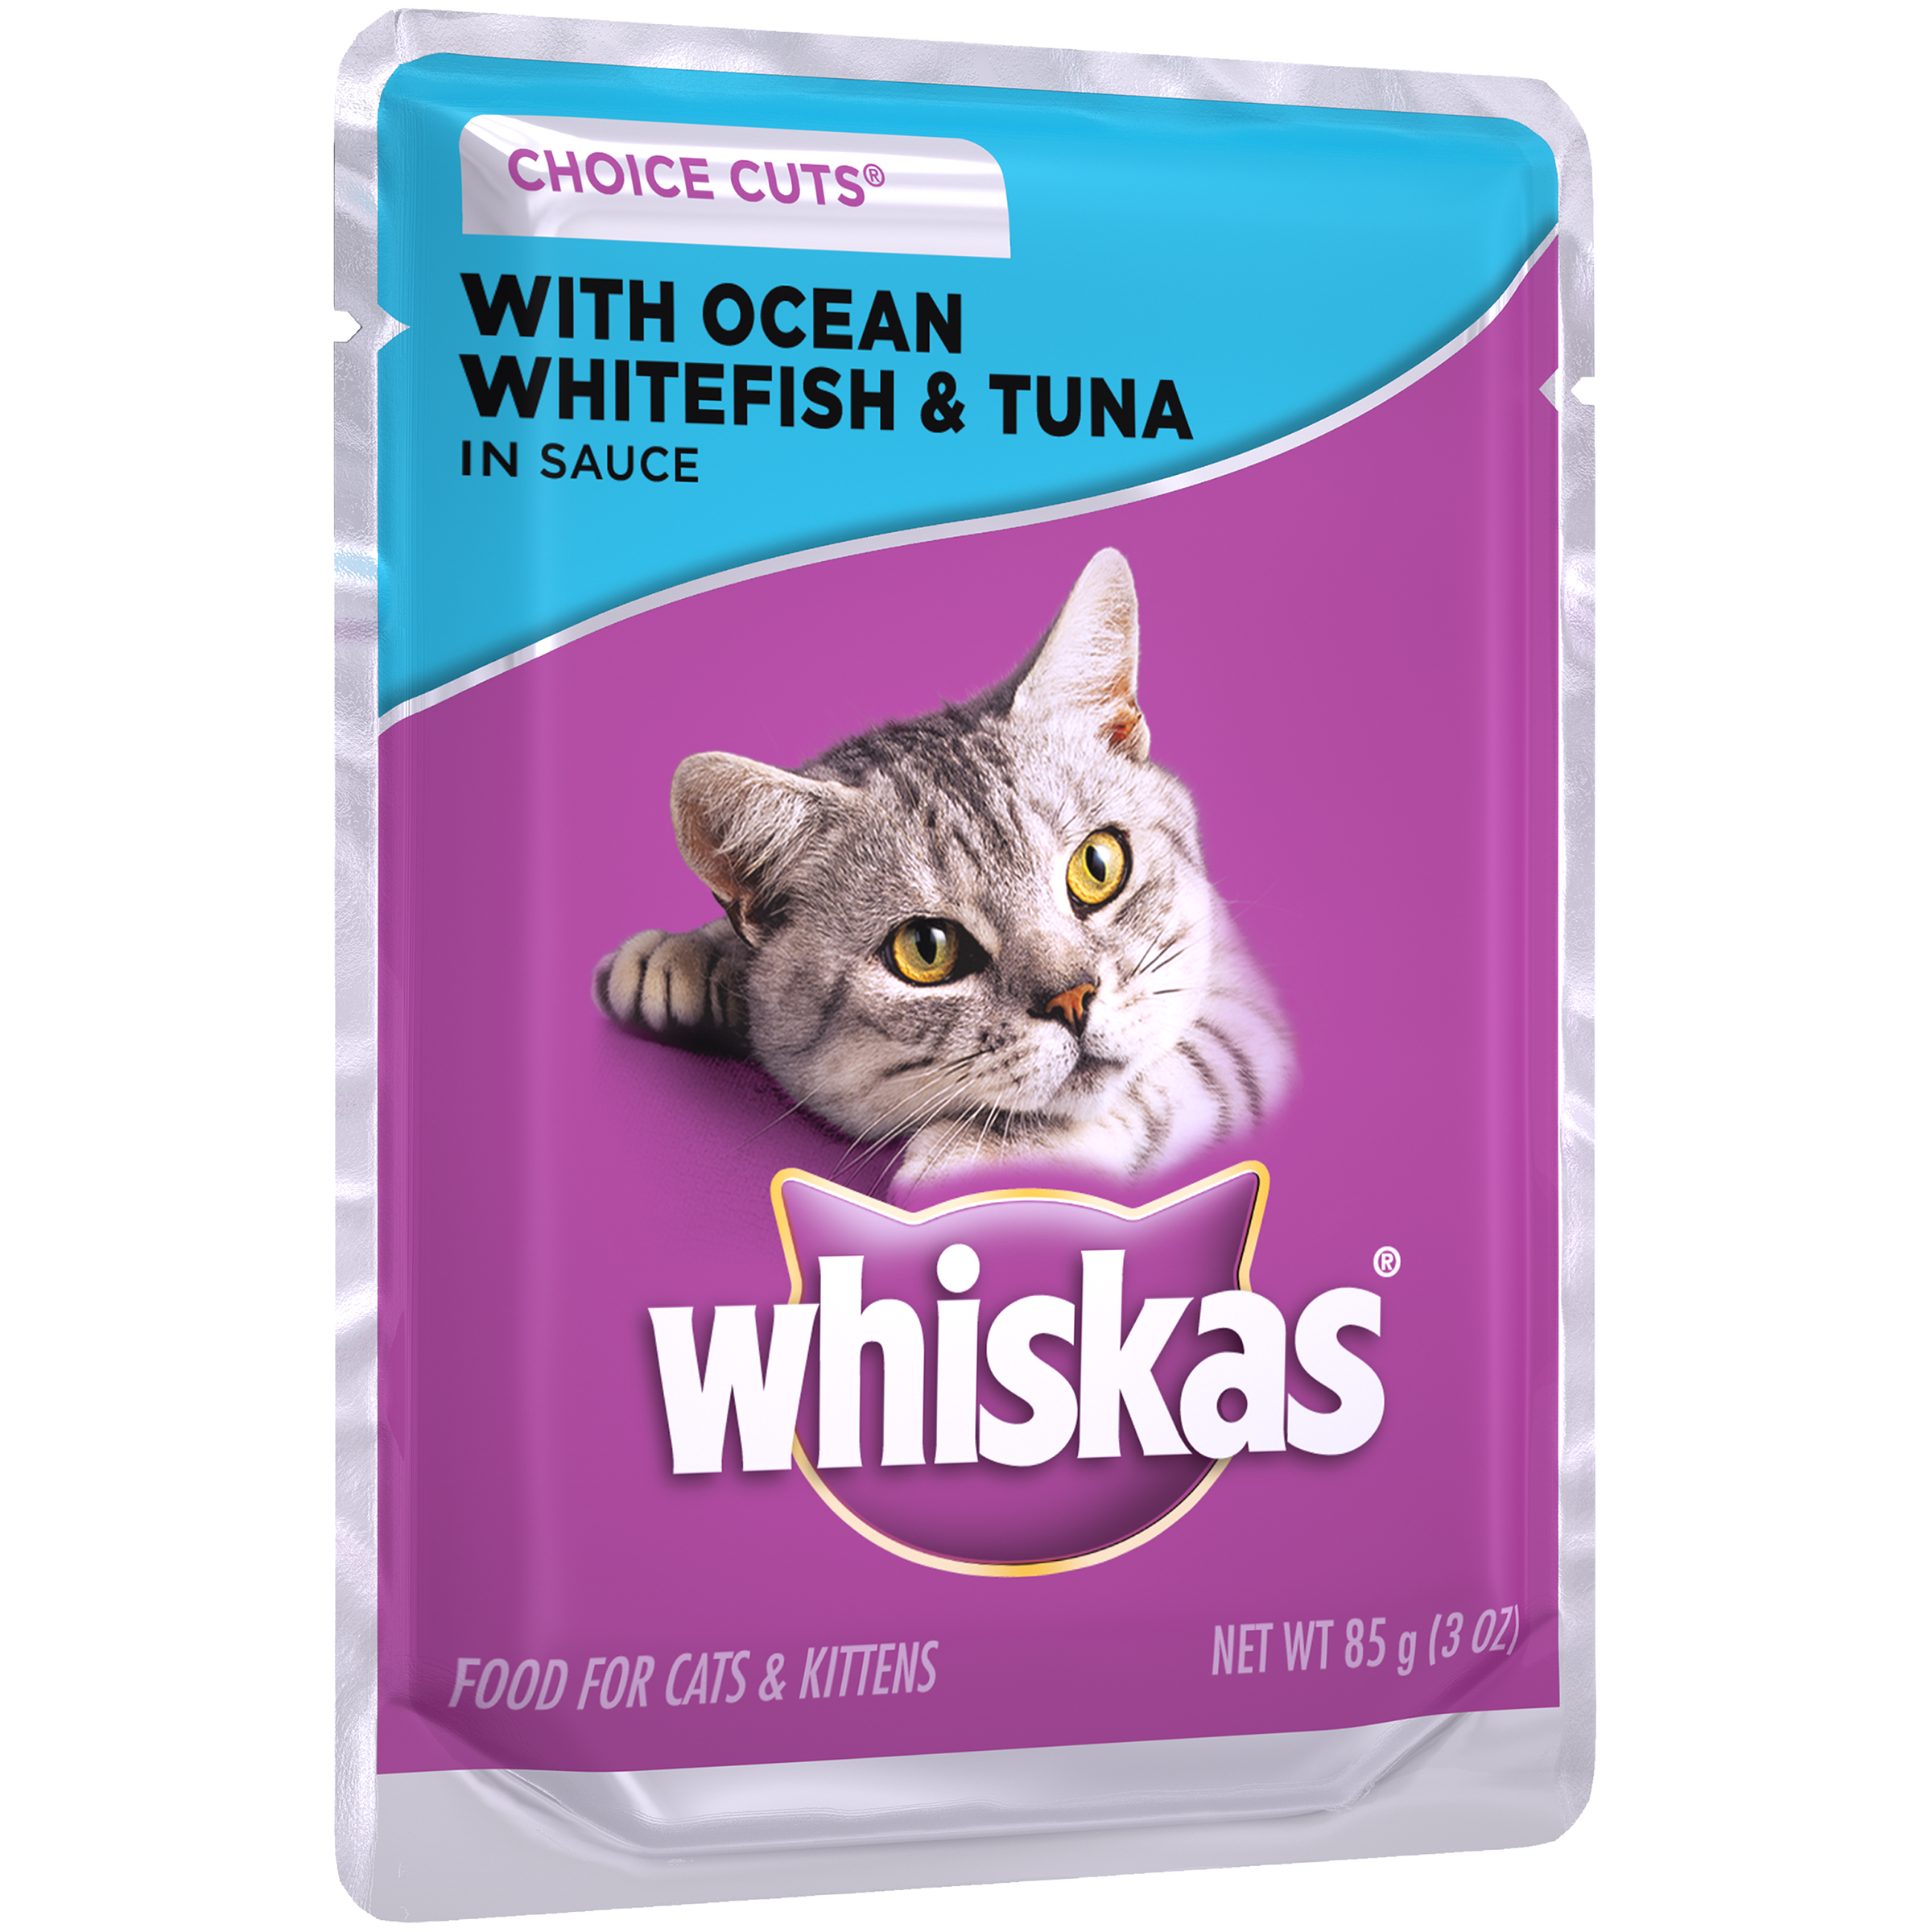 Whiskas® Choice Cuts® with Ocean Whitefish & Tuna in Sauce Wet Cat Food